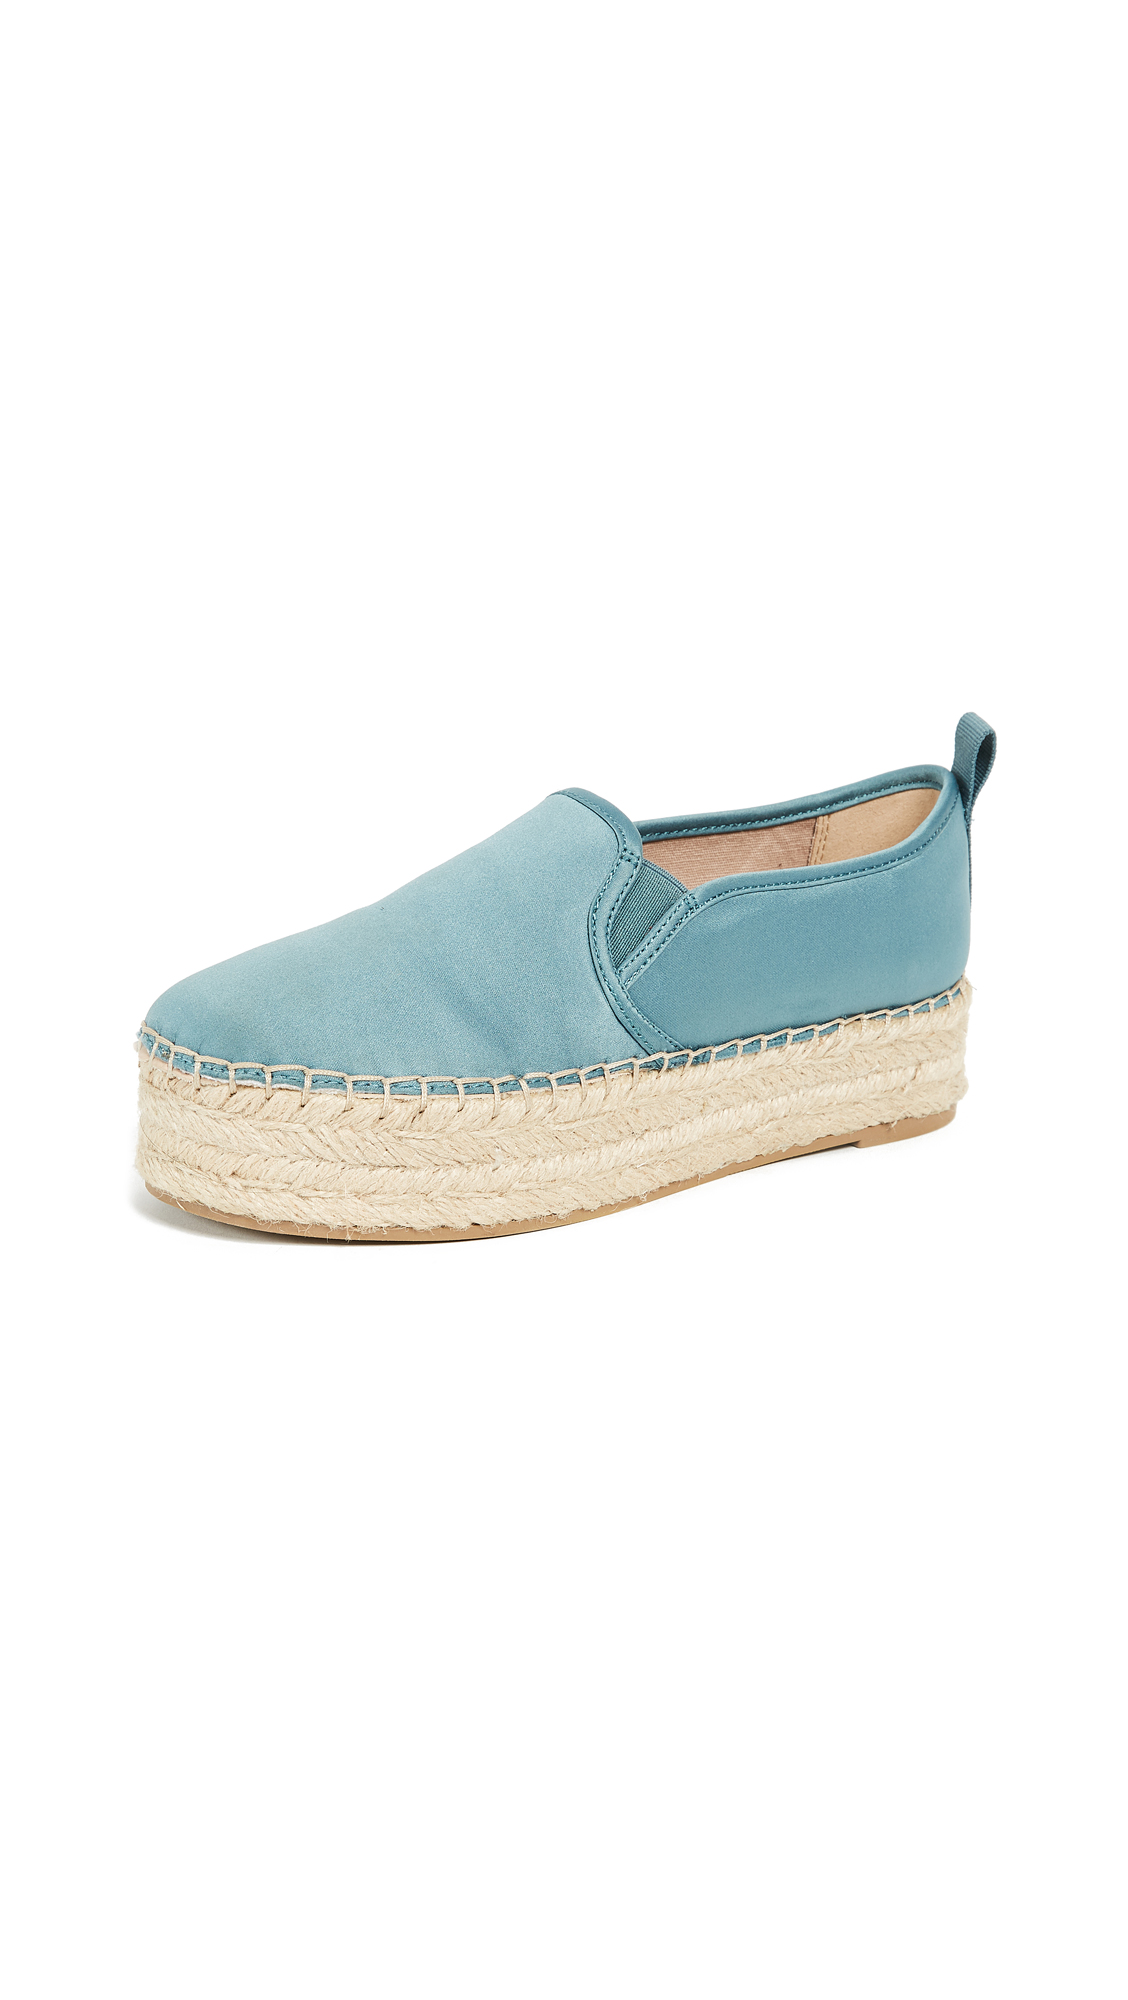 Sam Edelman Carrin Platform Espadrilles - Blue Shadow